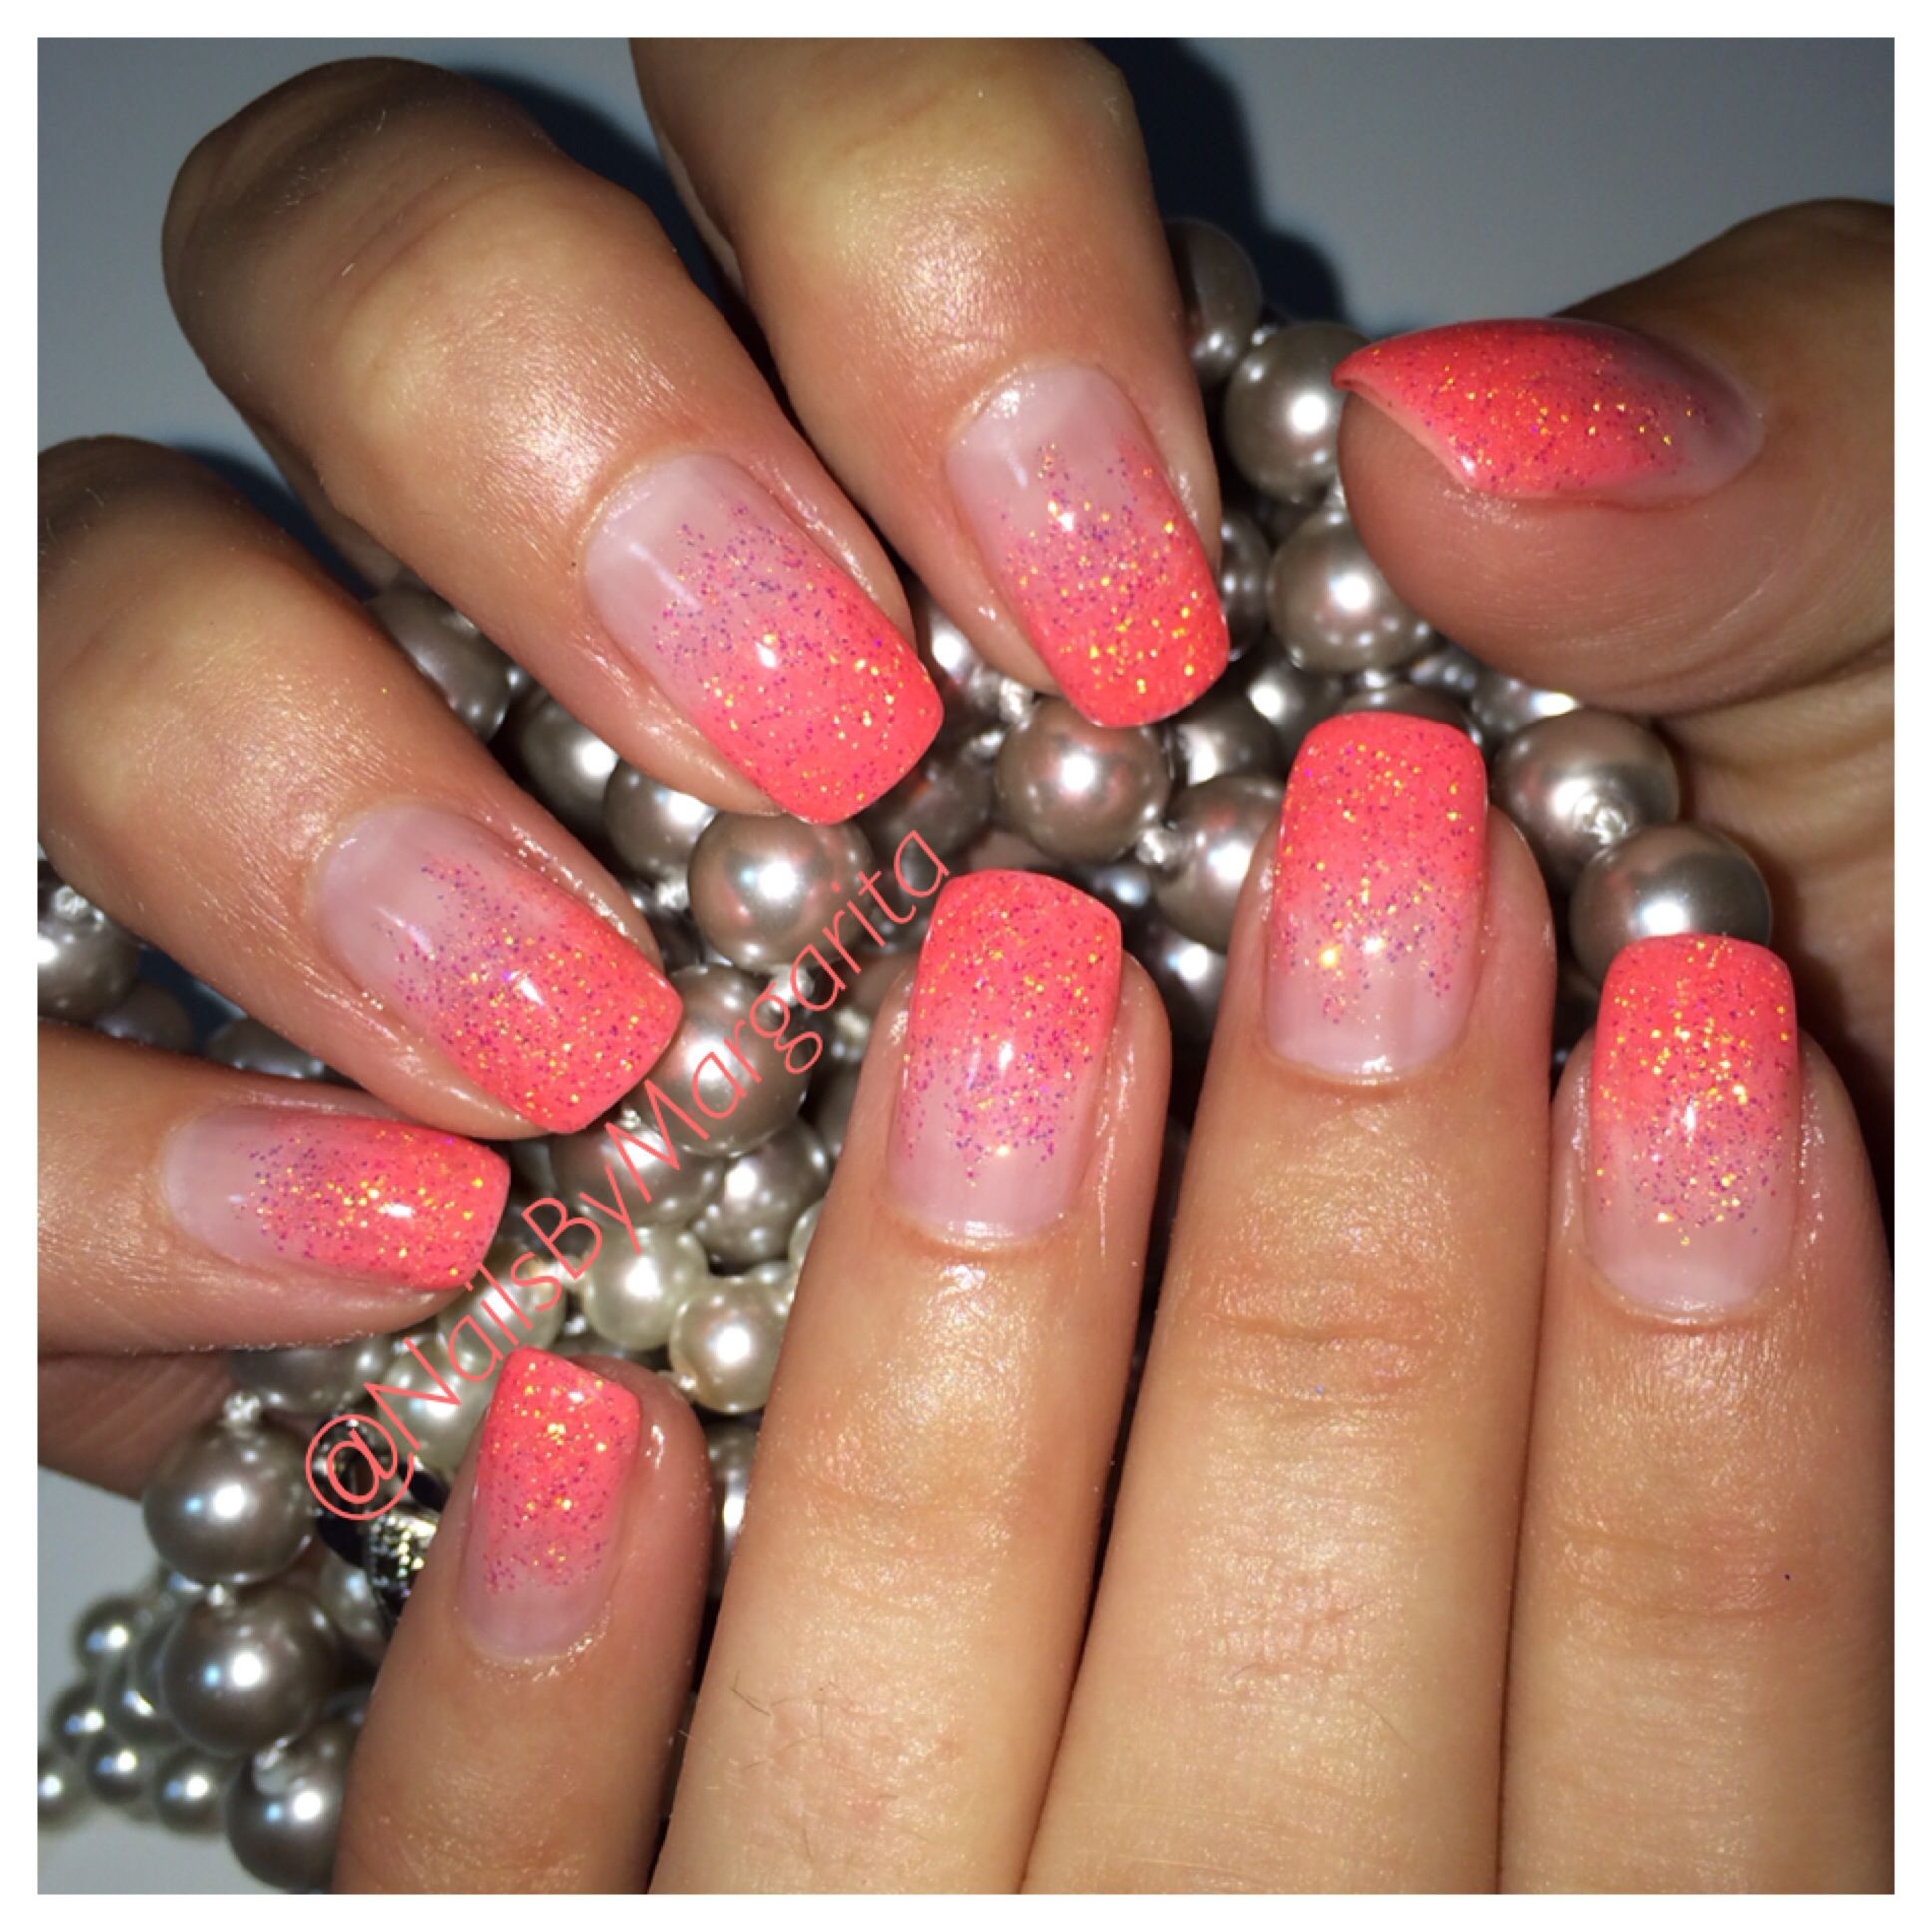 Coral Ombré Nails Glitter Gel Summer 2014 Nail Design #ByMargarita ...